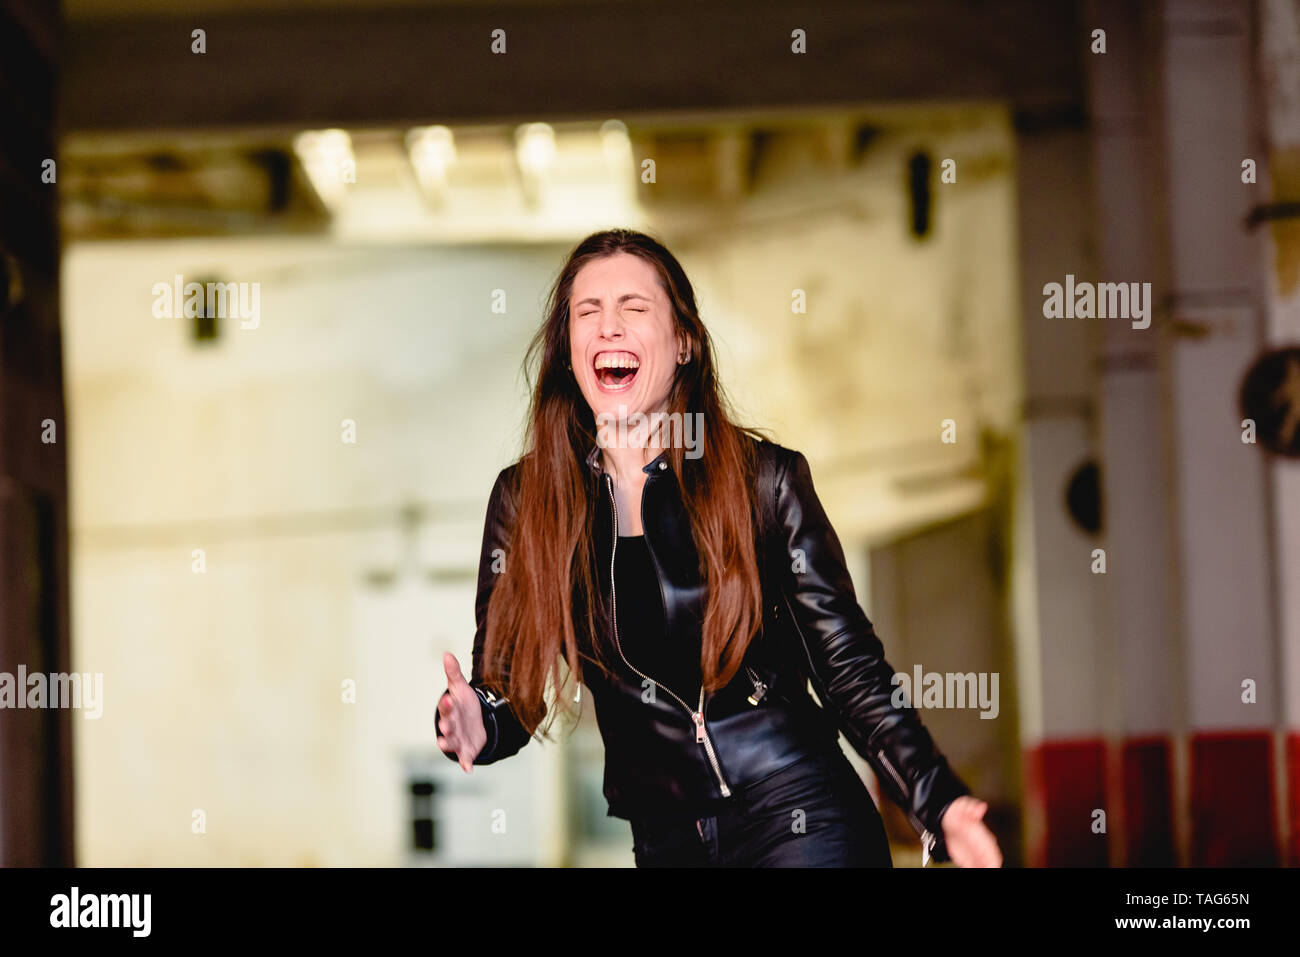 Young woman laughing loudly. - Stock Image